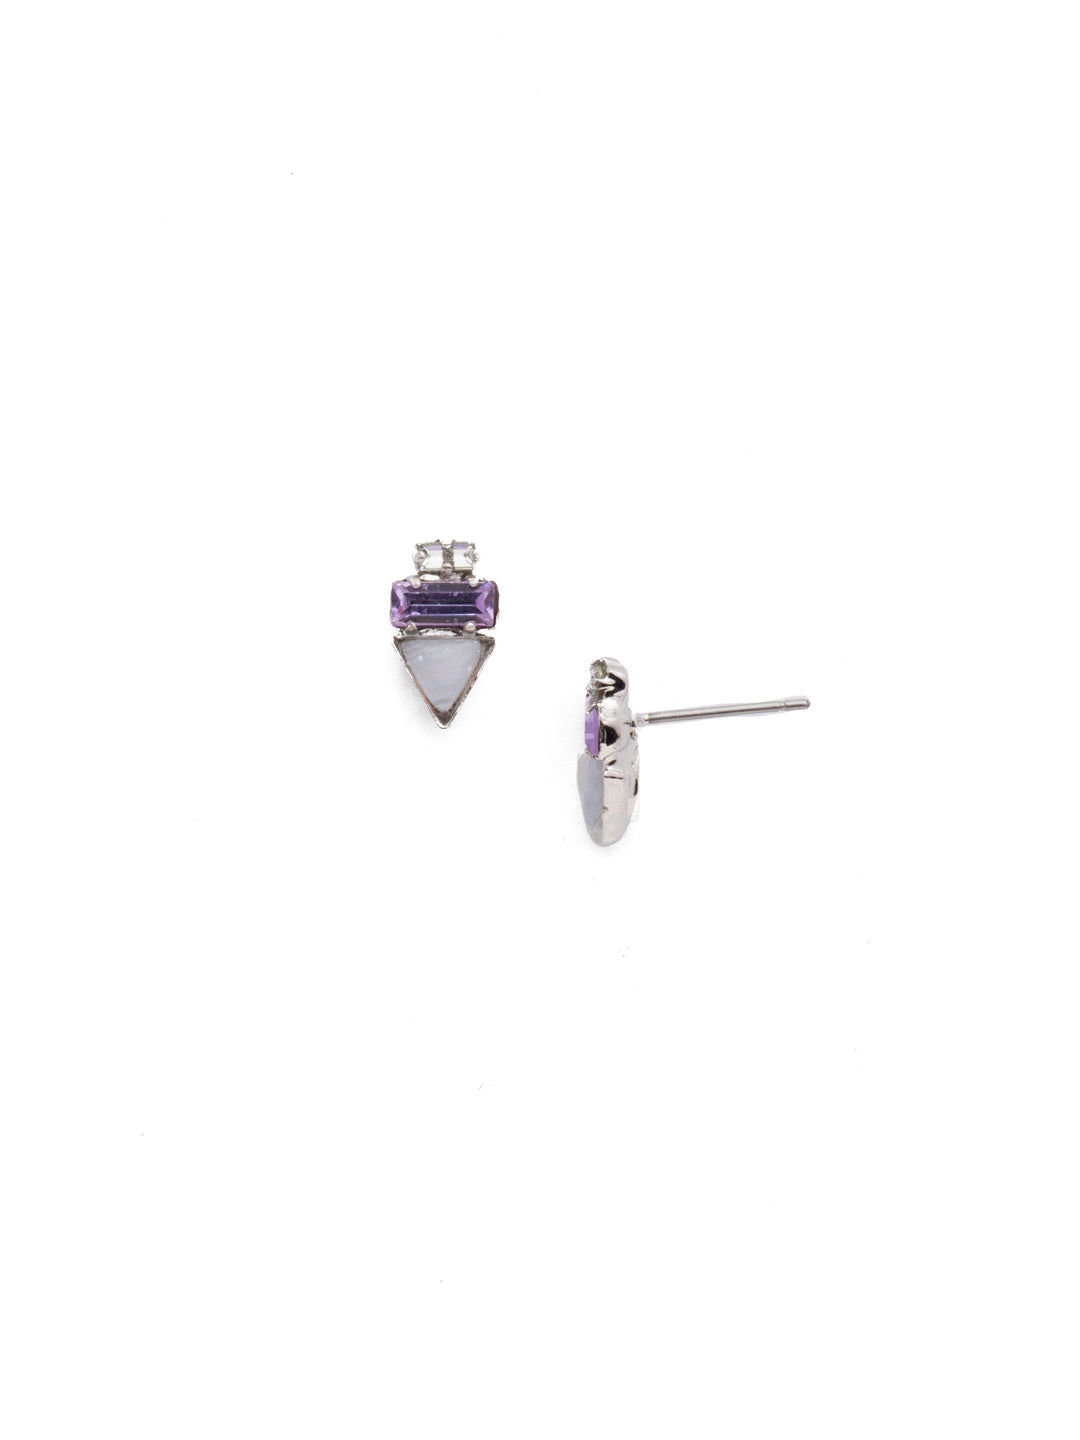 Triple Stack Stud Earrings - EDN104RHTUL